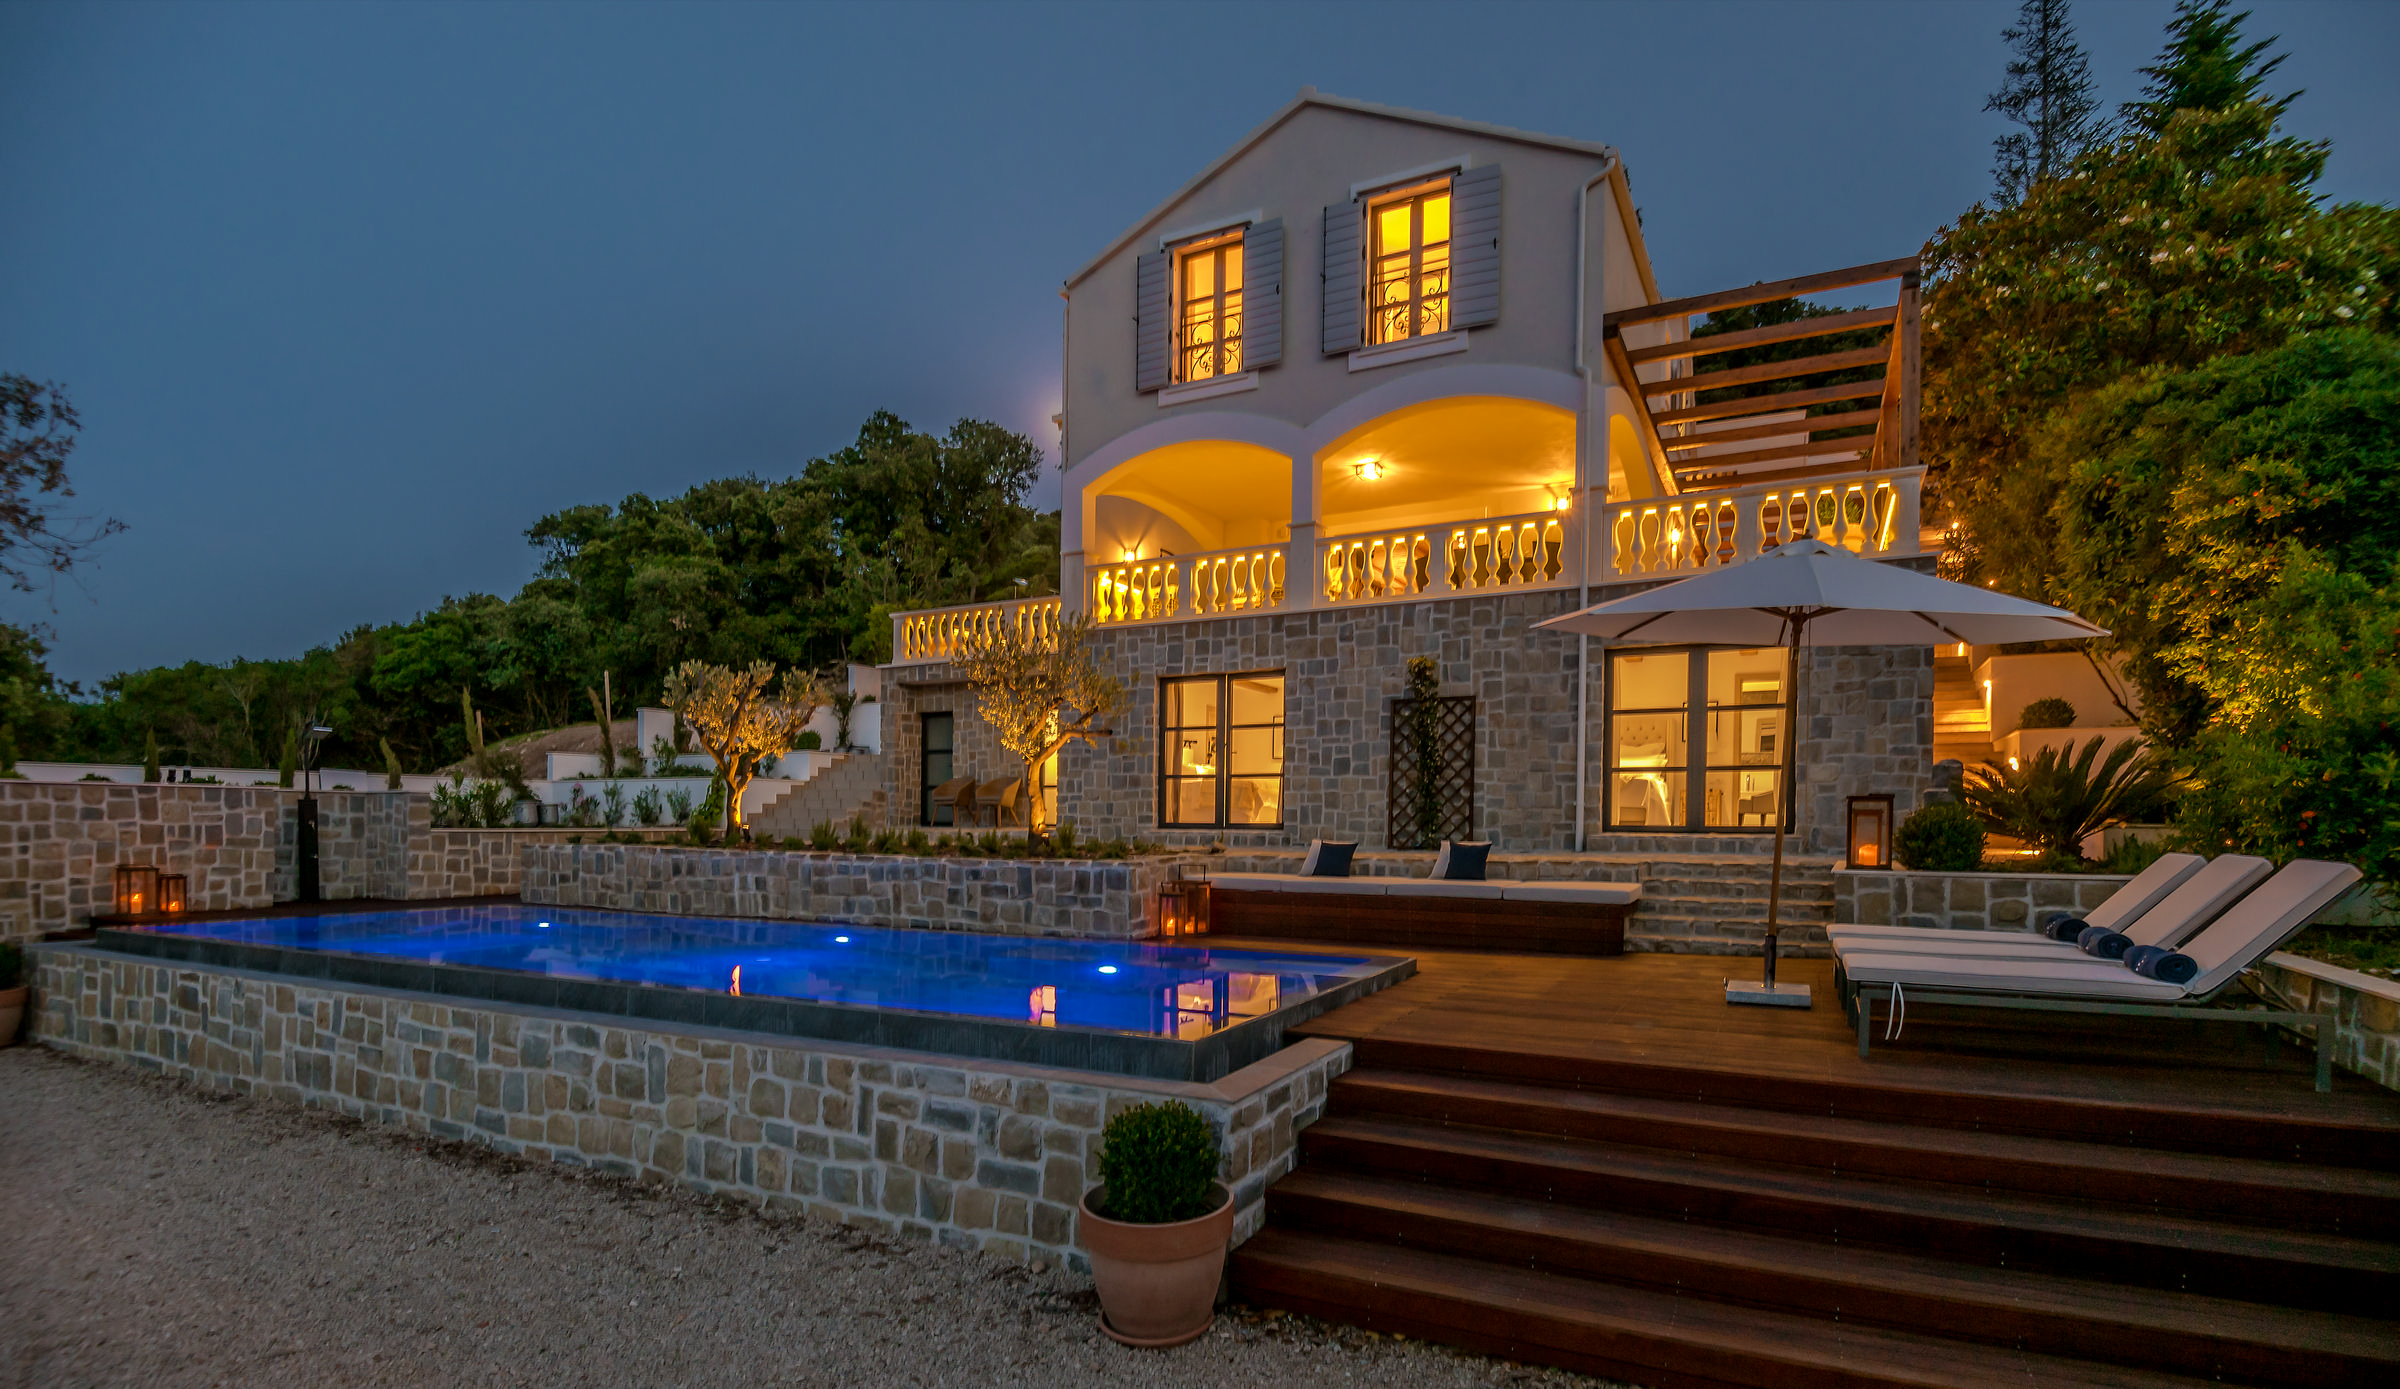 The night image of a residence with a pool with strong yellow light.